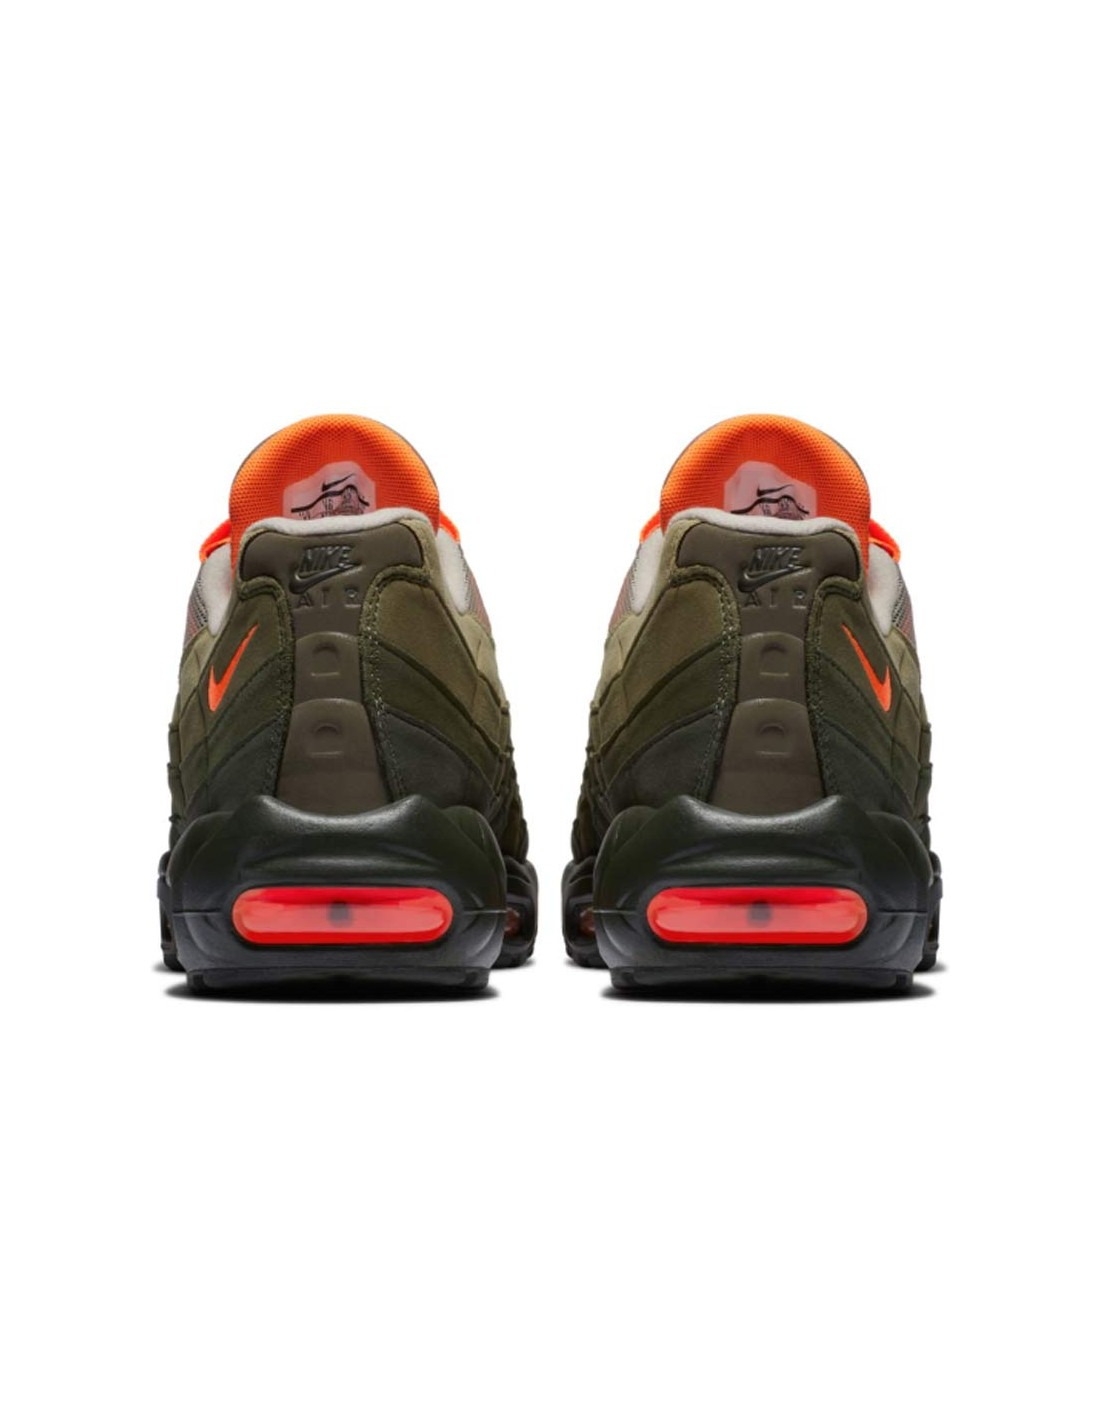 Sneakers 200 air ORANGE STRINGTOTAL NIKE max Nike 95 og